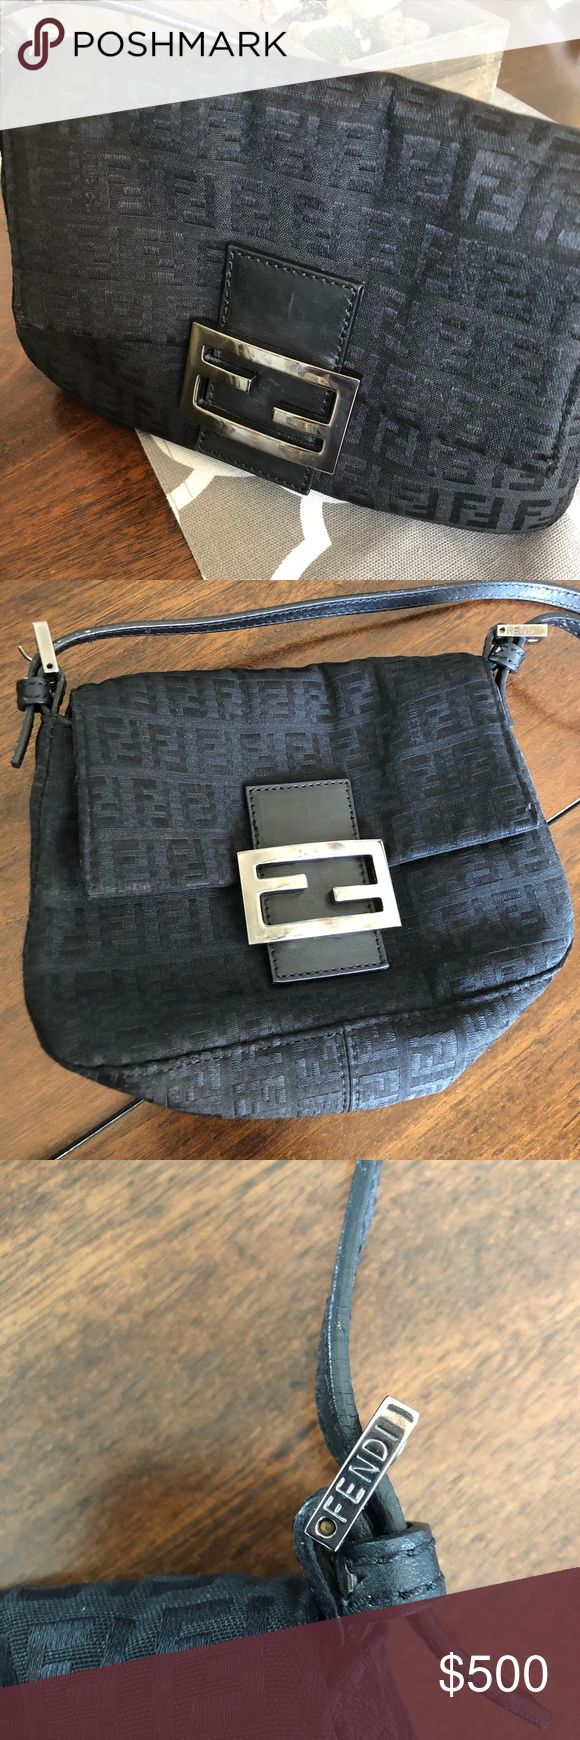 Vintage fendi mini baguette bag Fendi mini bag, Mini bag